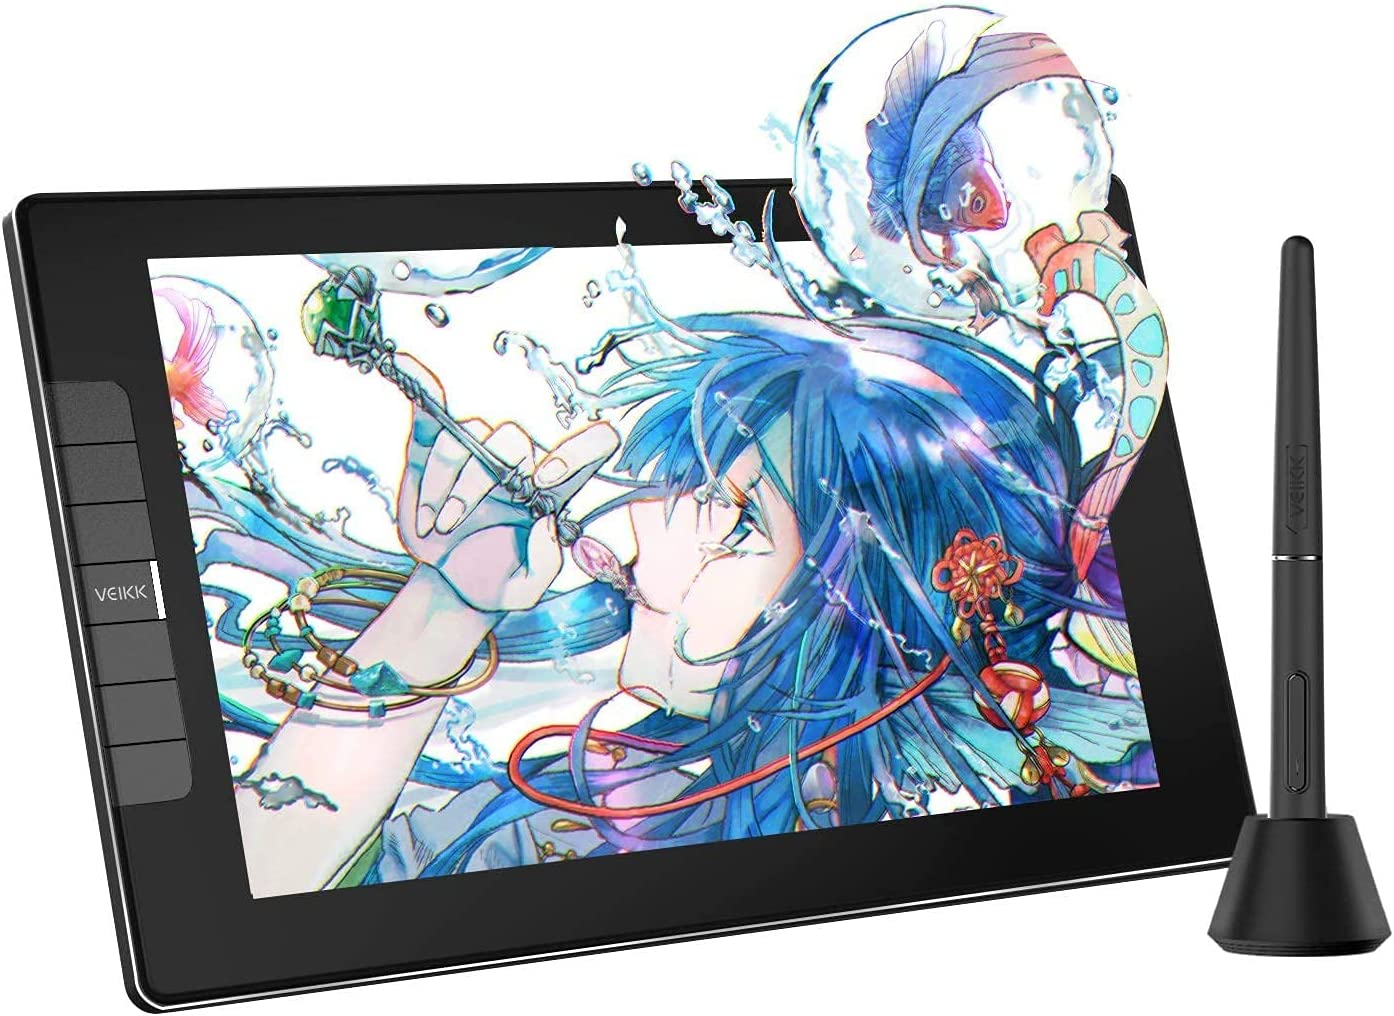 VEIKK VK1200 11.6 inch Full-Laminated Drawing Monitor, IPS HD Screen Drawing Tablet with Art Glove and 8192 Levels Tilt Pen, Graphic Digital Monitor Compatible with PC/Mac for Teach Anime(120%sRGB)